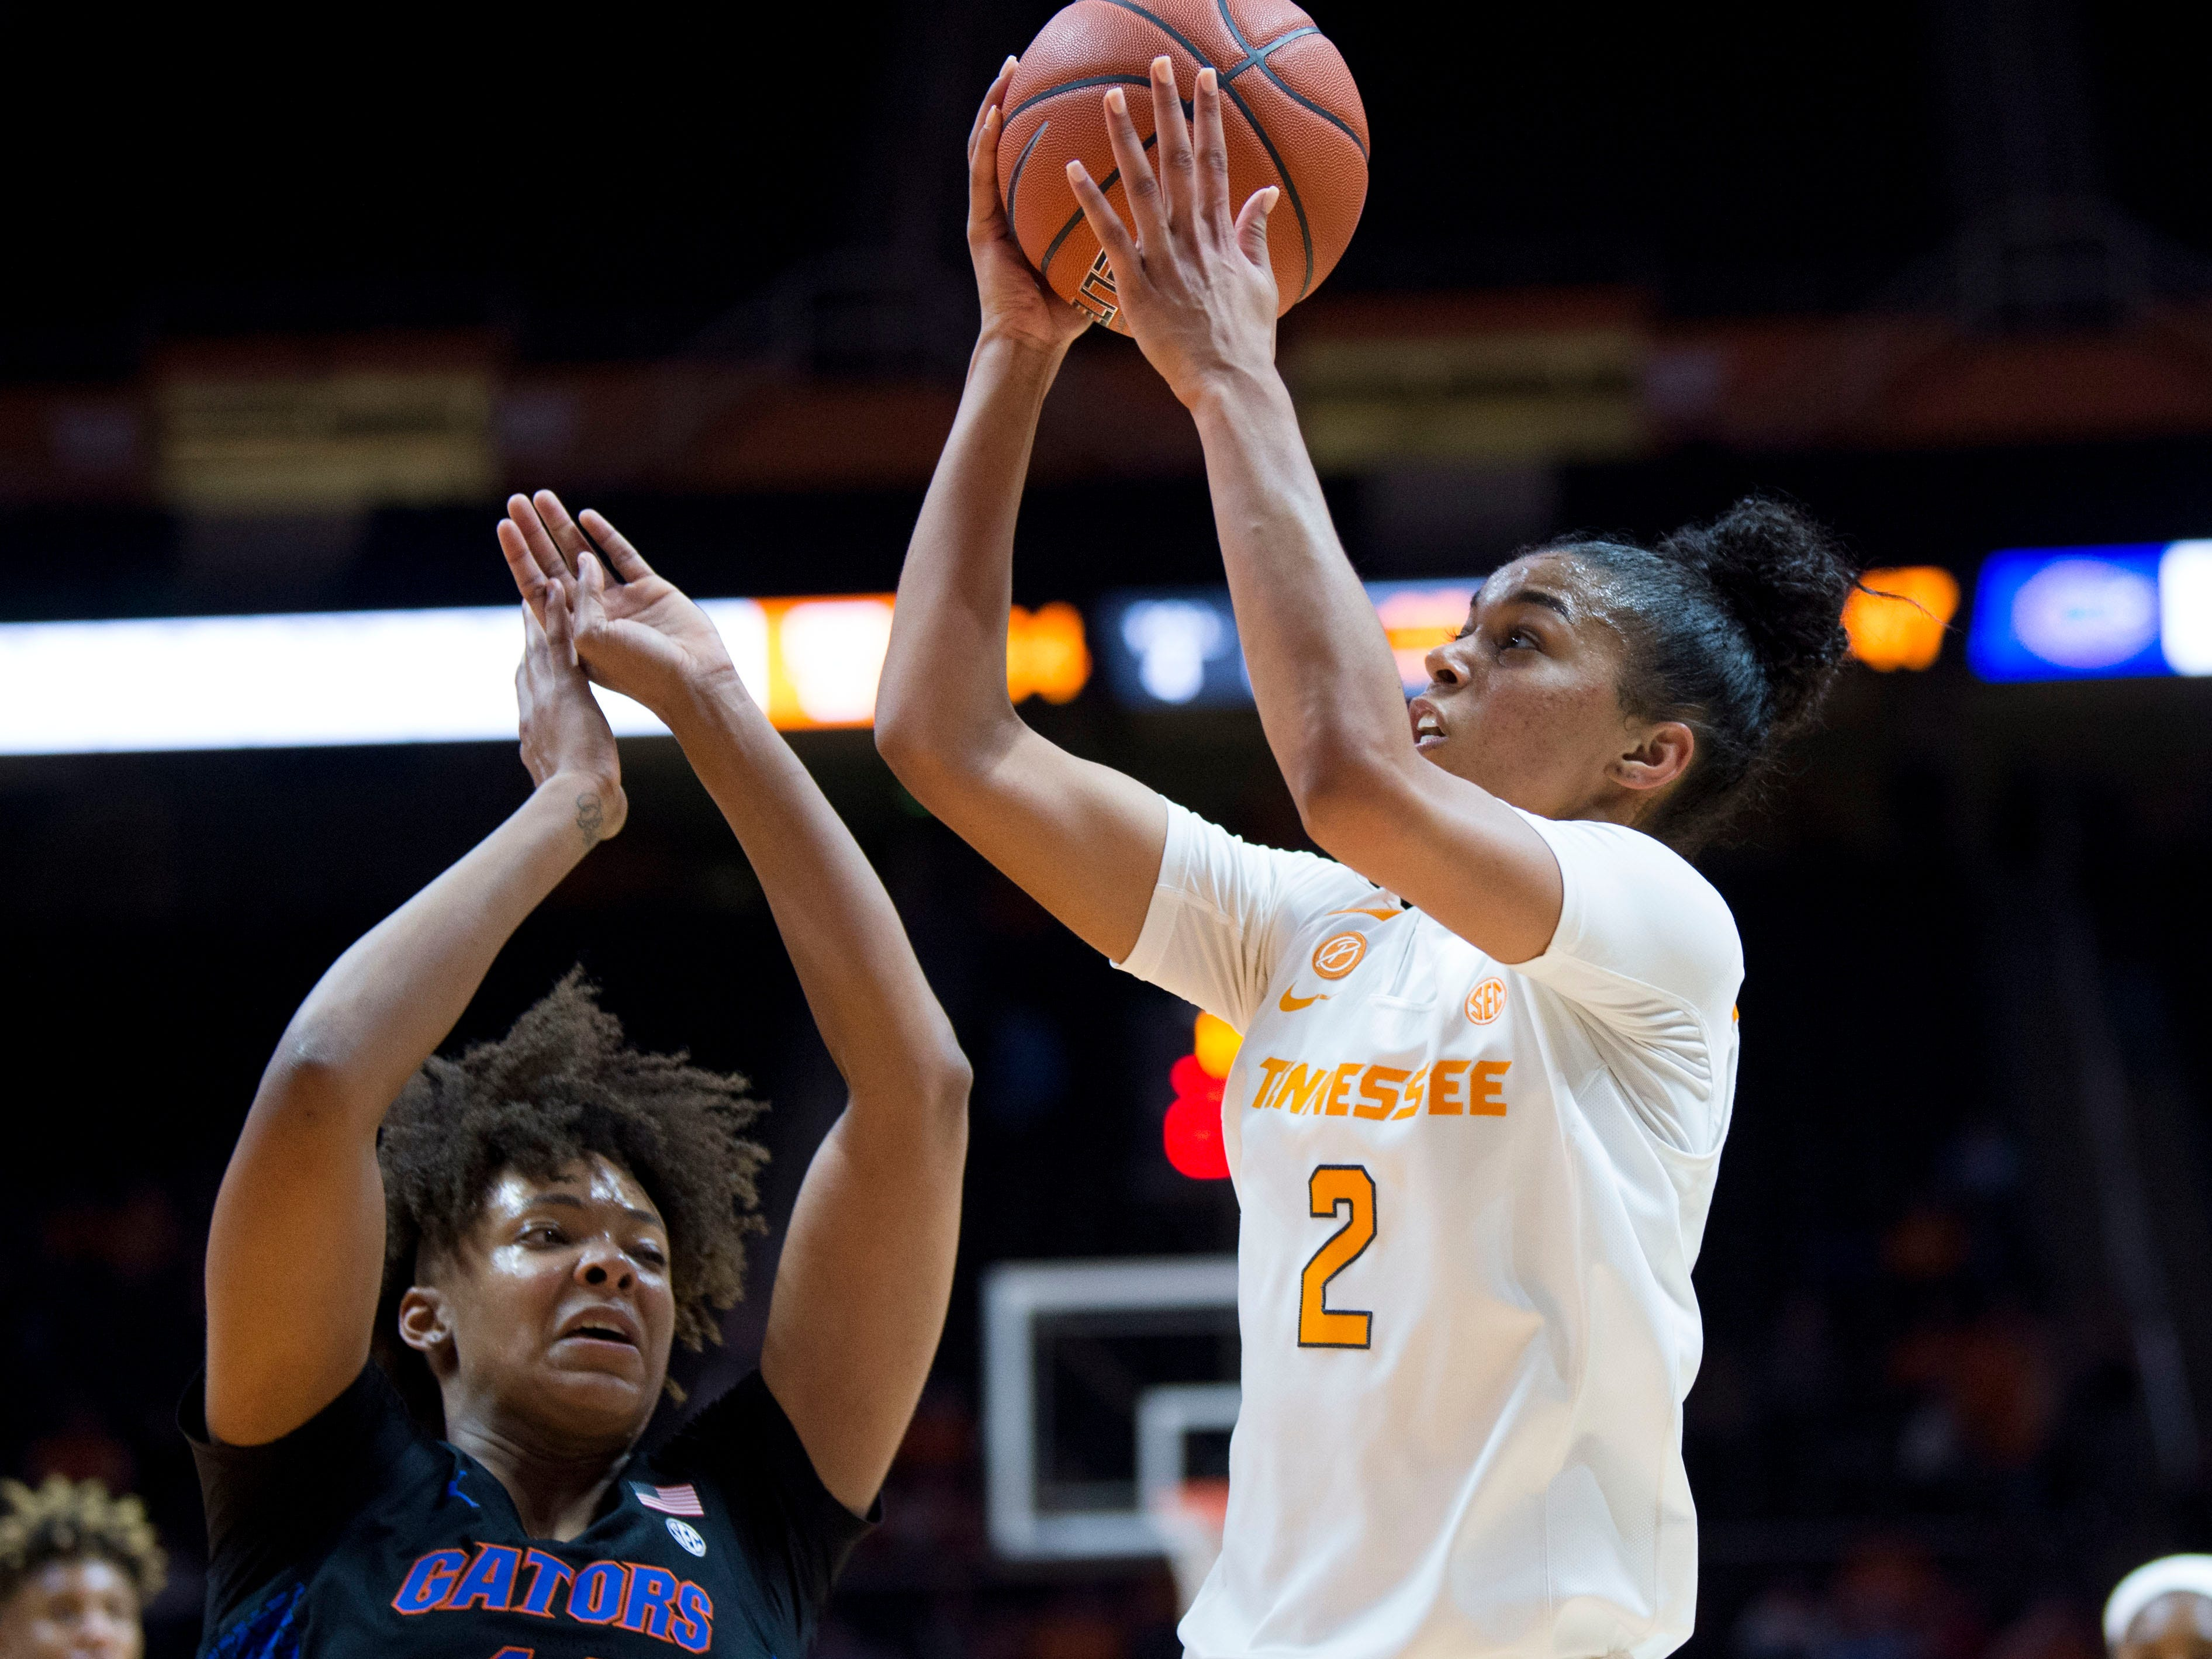 Tennessee's Evina Westbrook (2) takes a shot at the basket over Florida's Zada Williams (12) on Thursday, January 31, 2019.